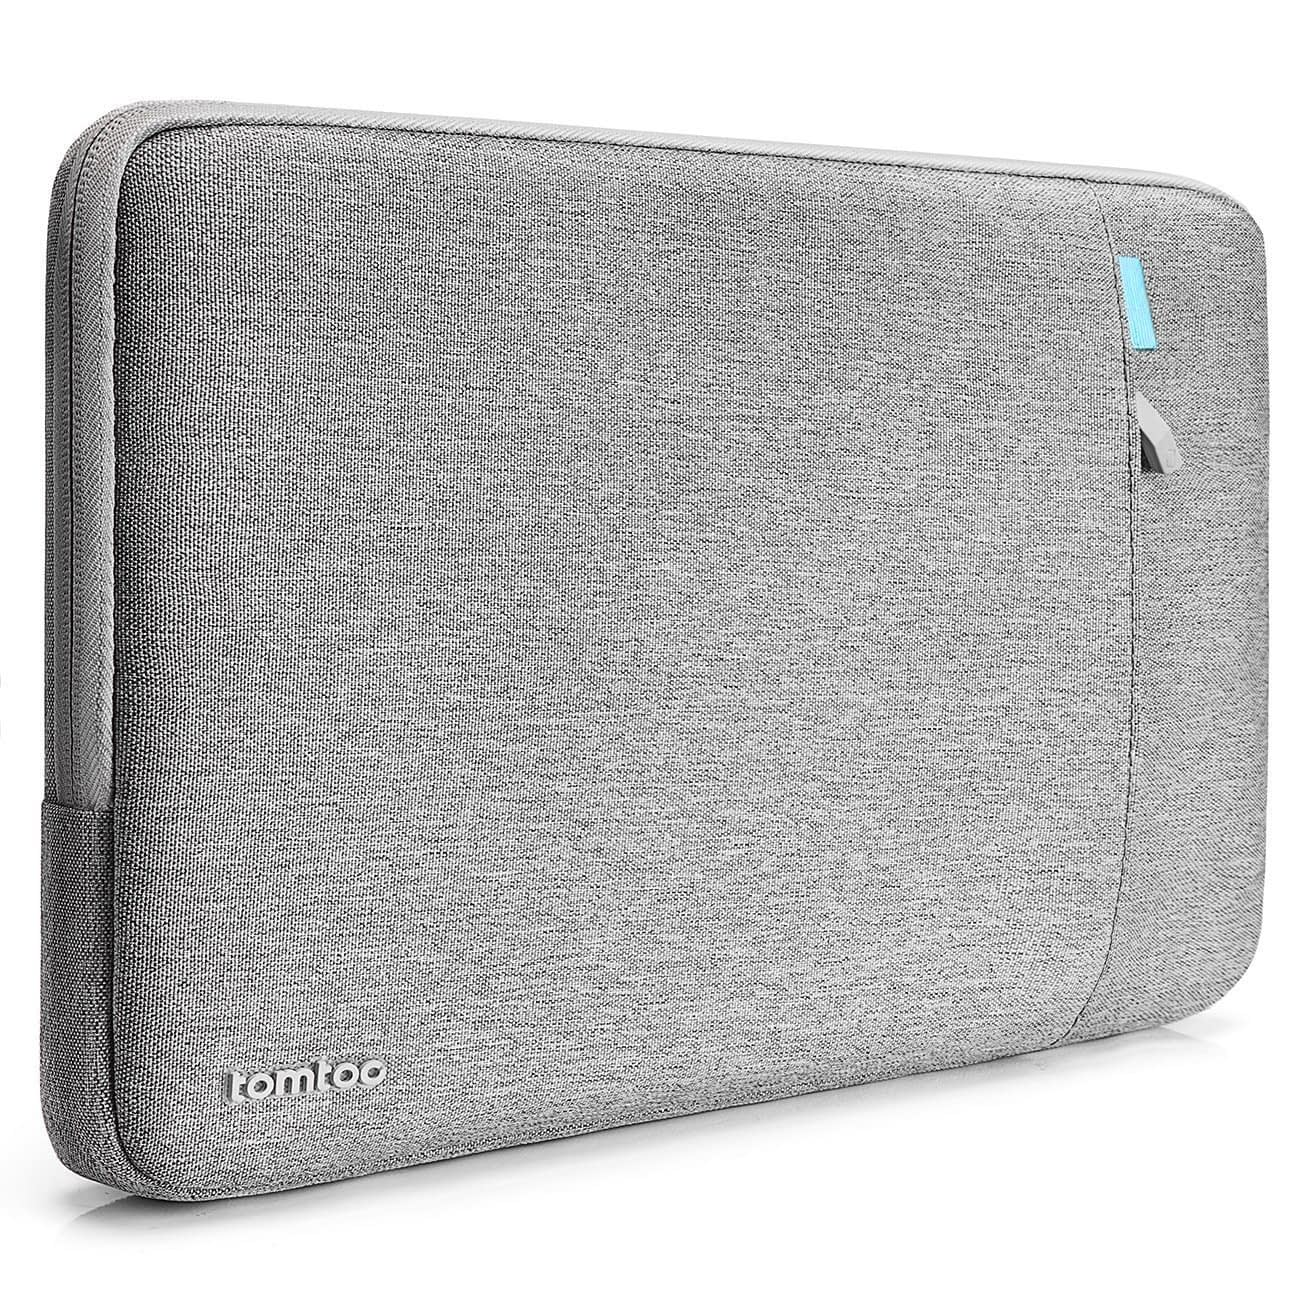 Tomtoc - best macbook pro case